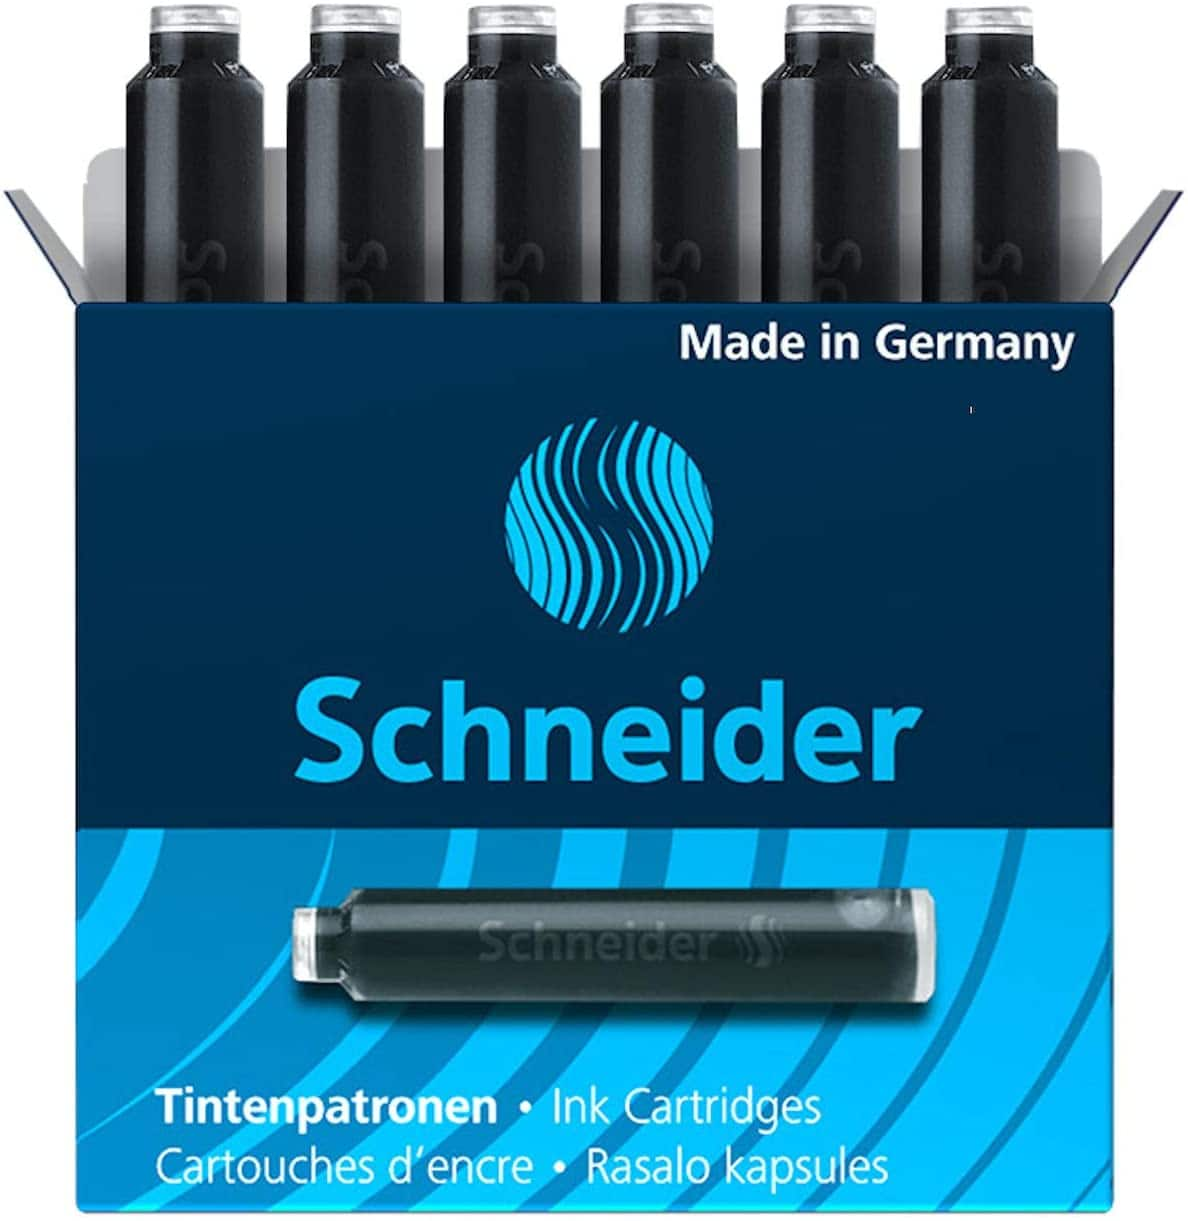 6-Pack Schneider Fountain Pen Ink Cartridge (Black) $0.99 + Free Prime Shipping